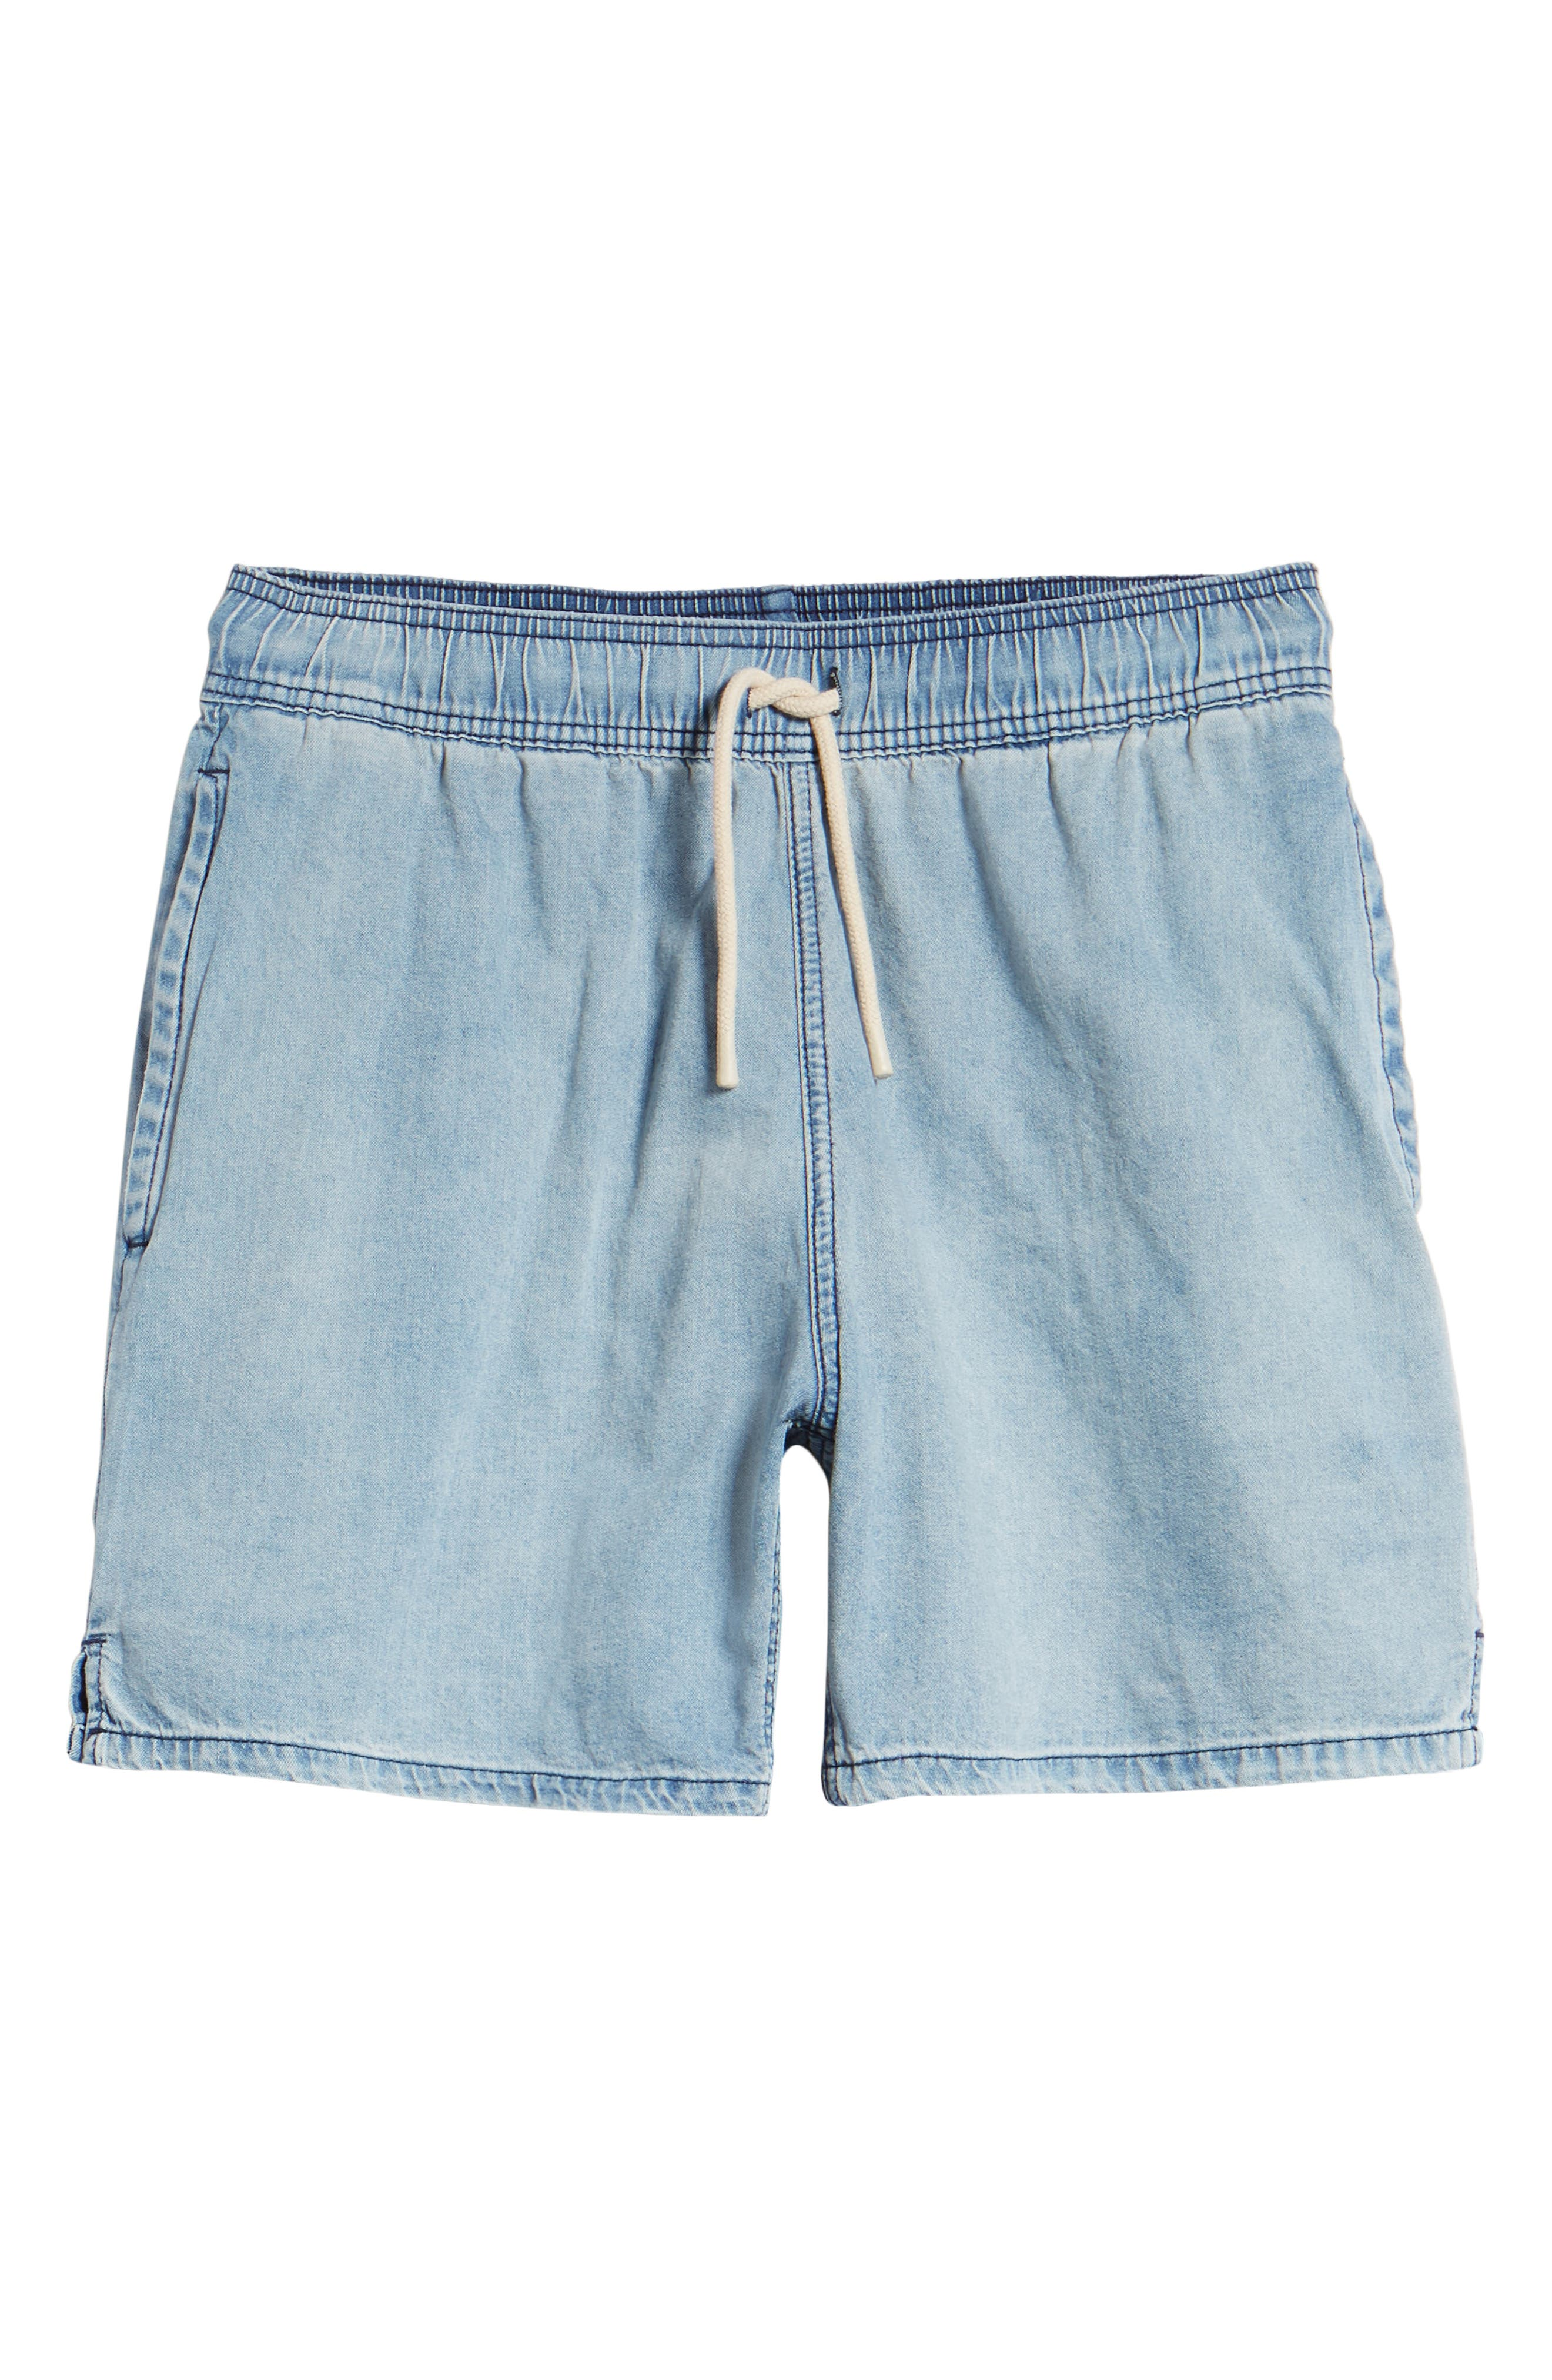 Zephyr Shorts,                             Alternate thumbnail 6, color,                             ARTIC WASH